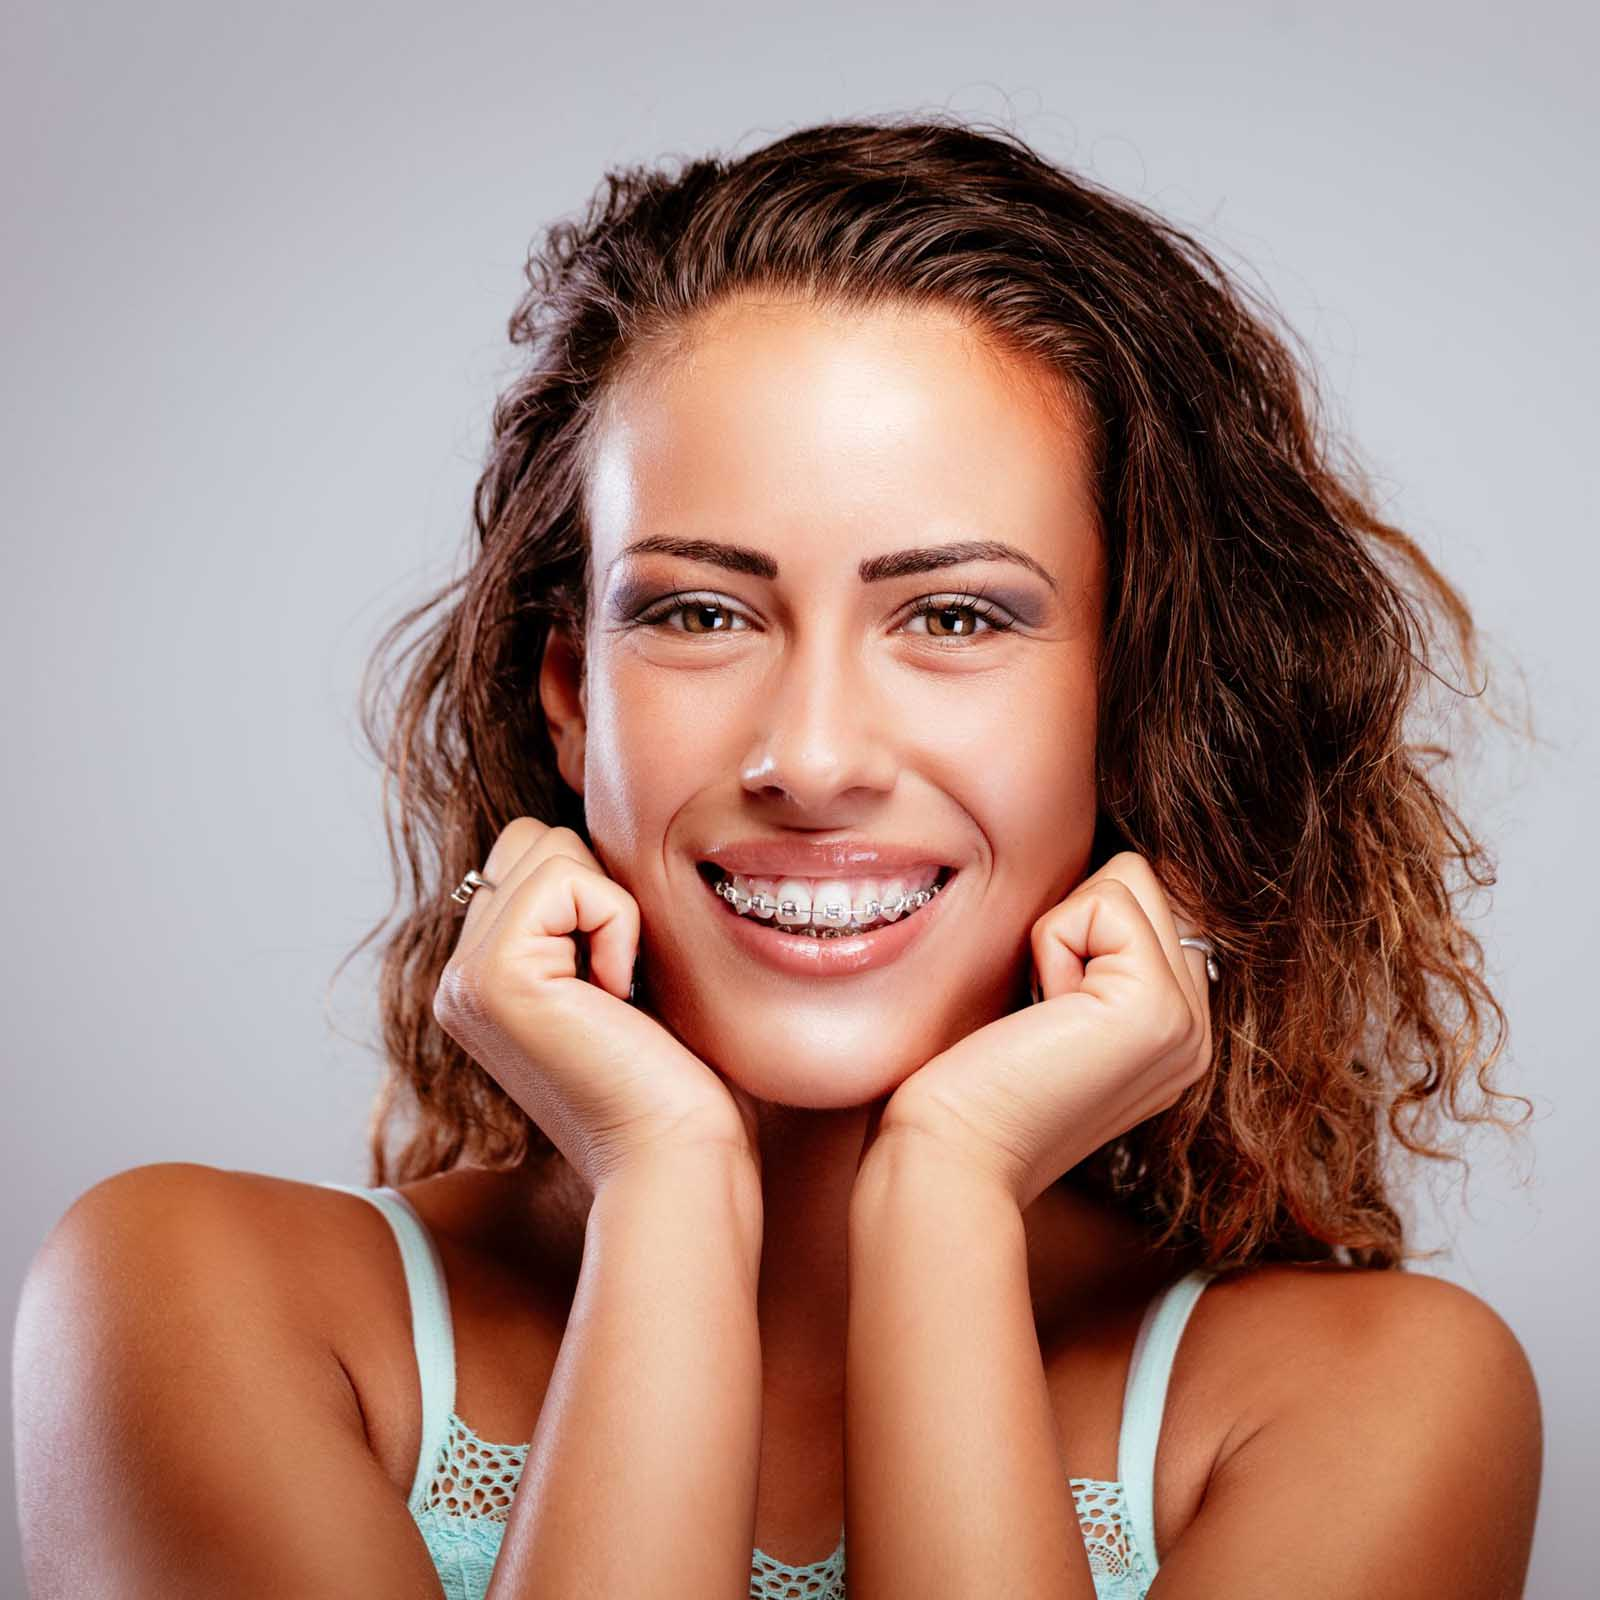 Treatment With Braces